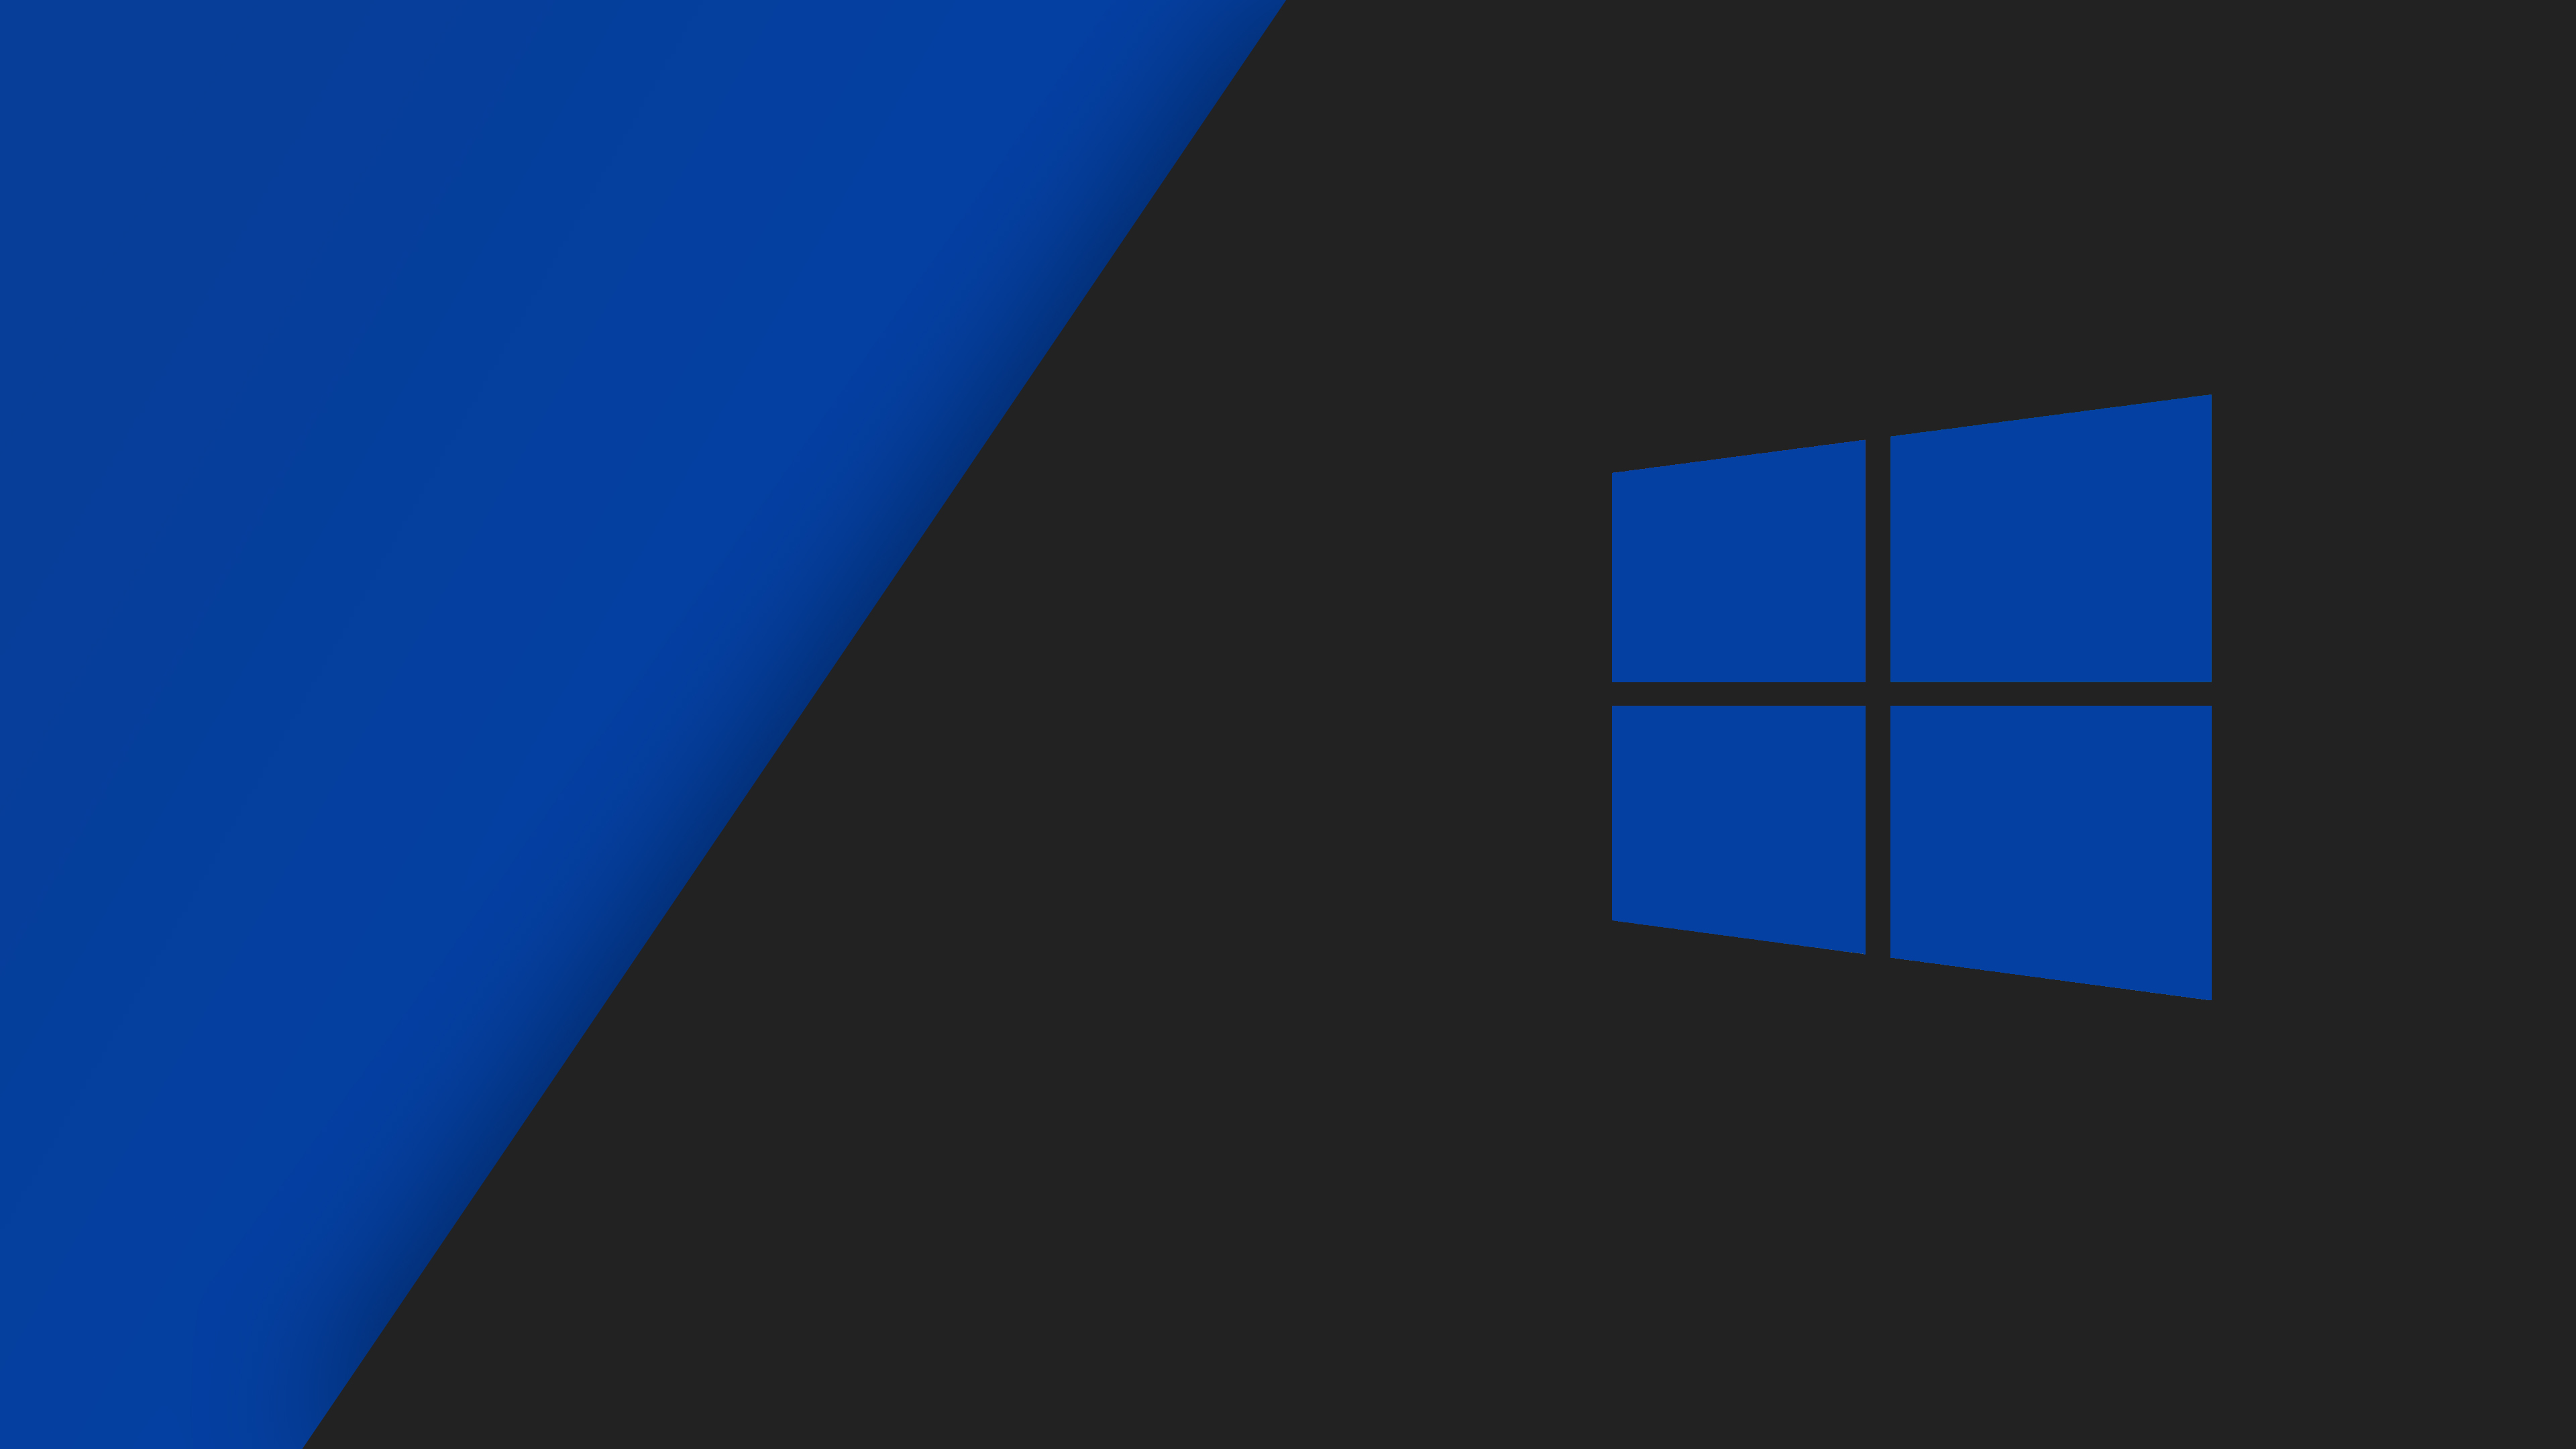 Cool Windows 10 Hd Wallpapers Windows 4k Desktop Background 3840x2160 Download Hd Wallpaper Wallpapertip